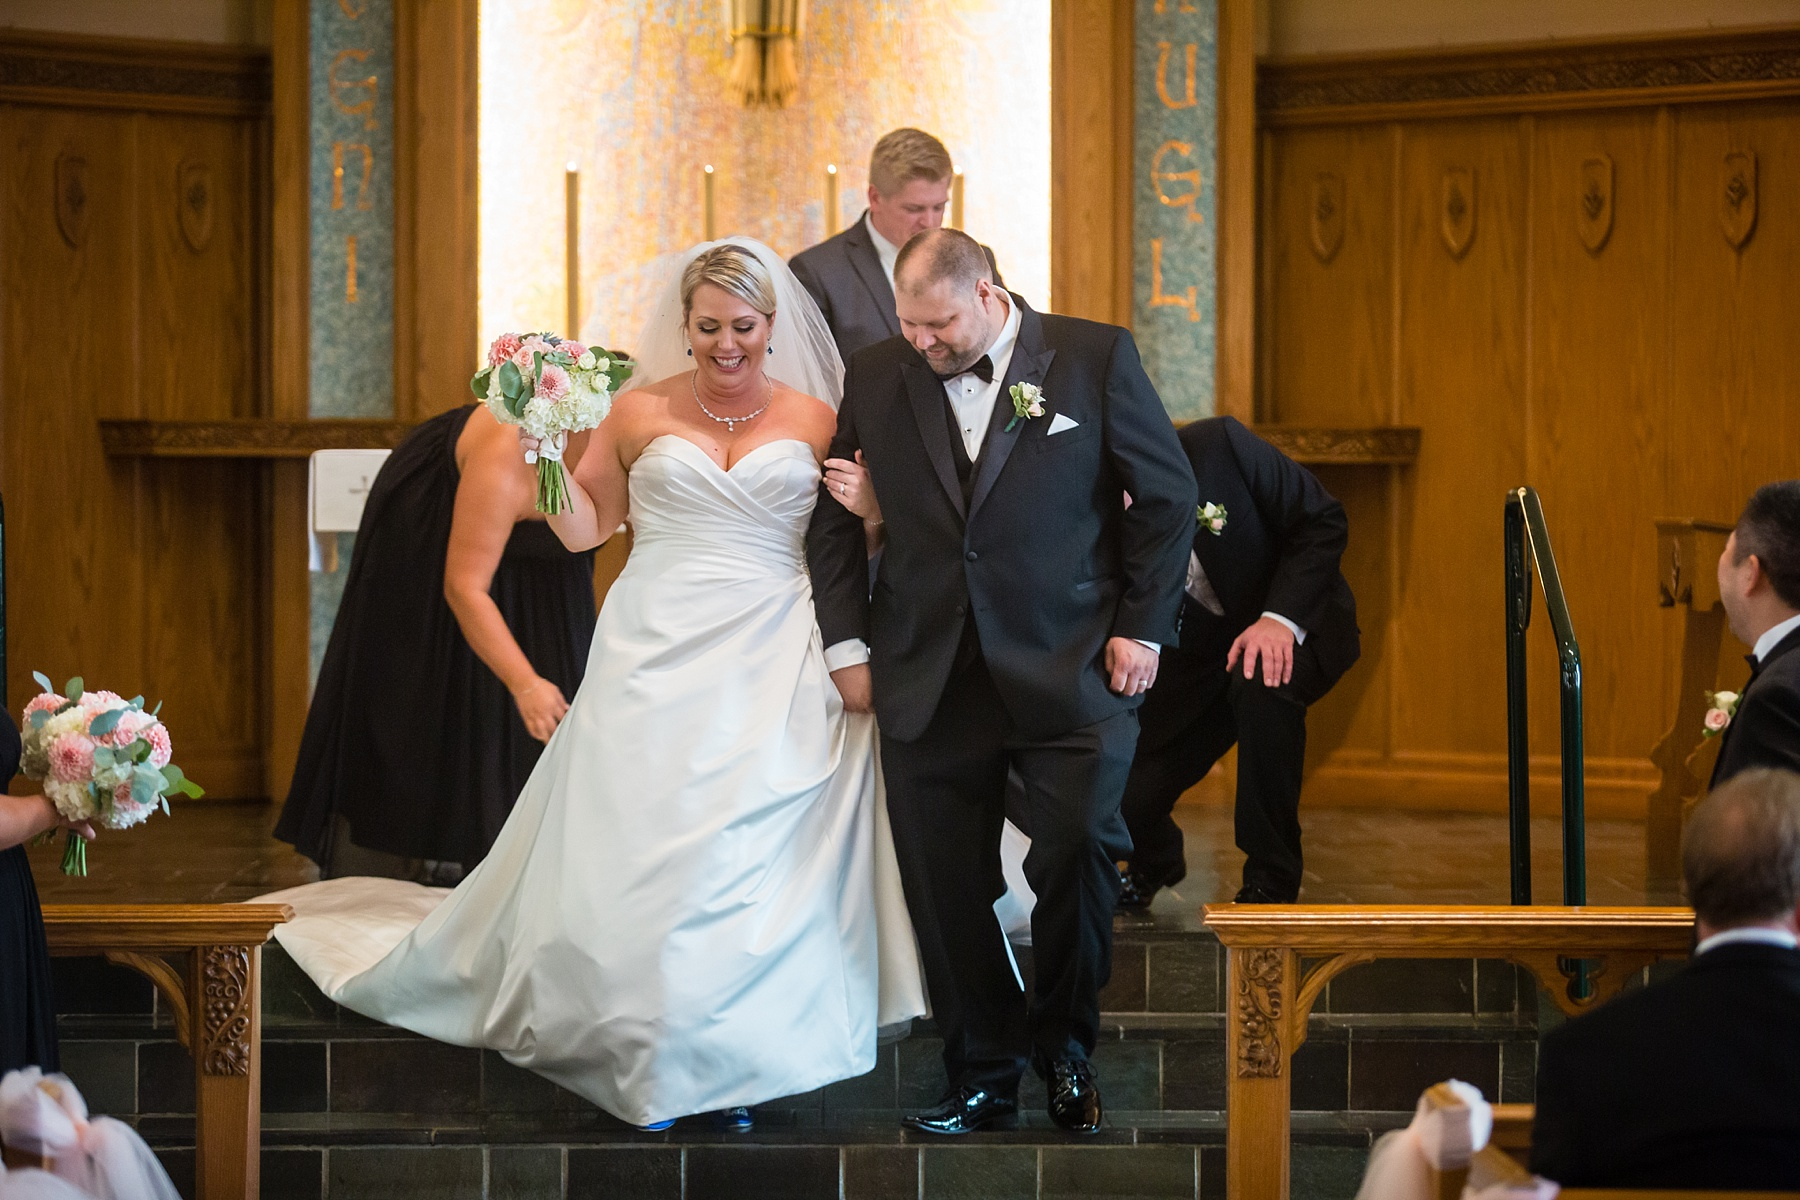 Brandon_Shafer_Photography_Brad_Sarah_Downtown_Grand_Rapids_Wedding_0035.jpg